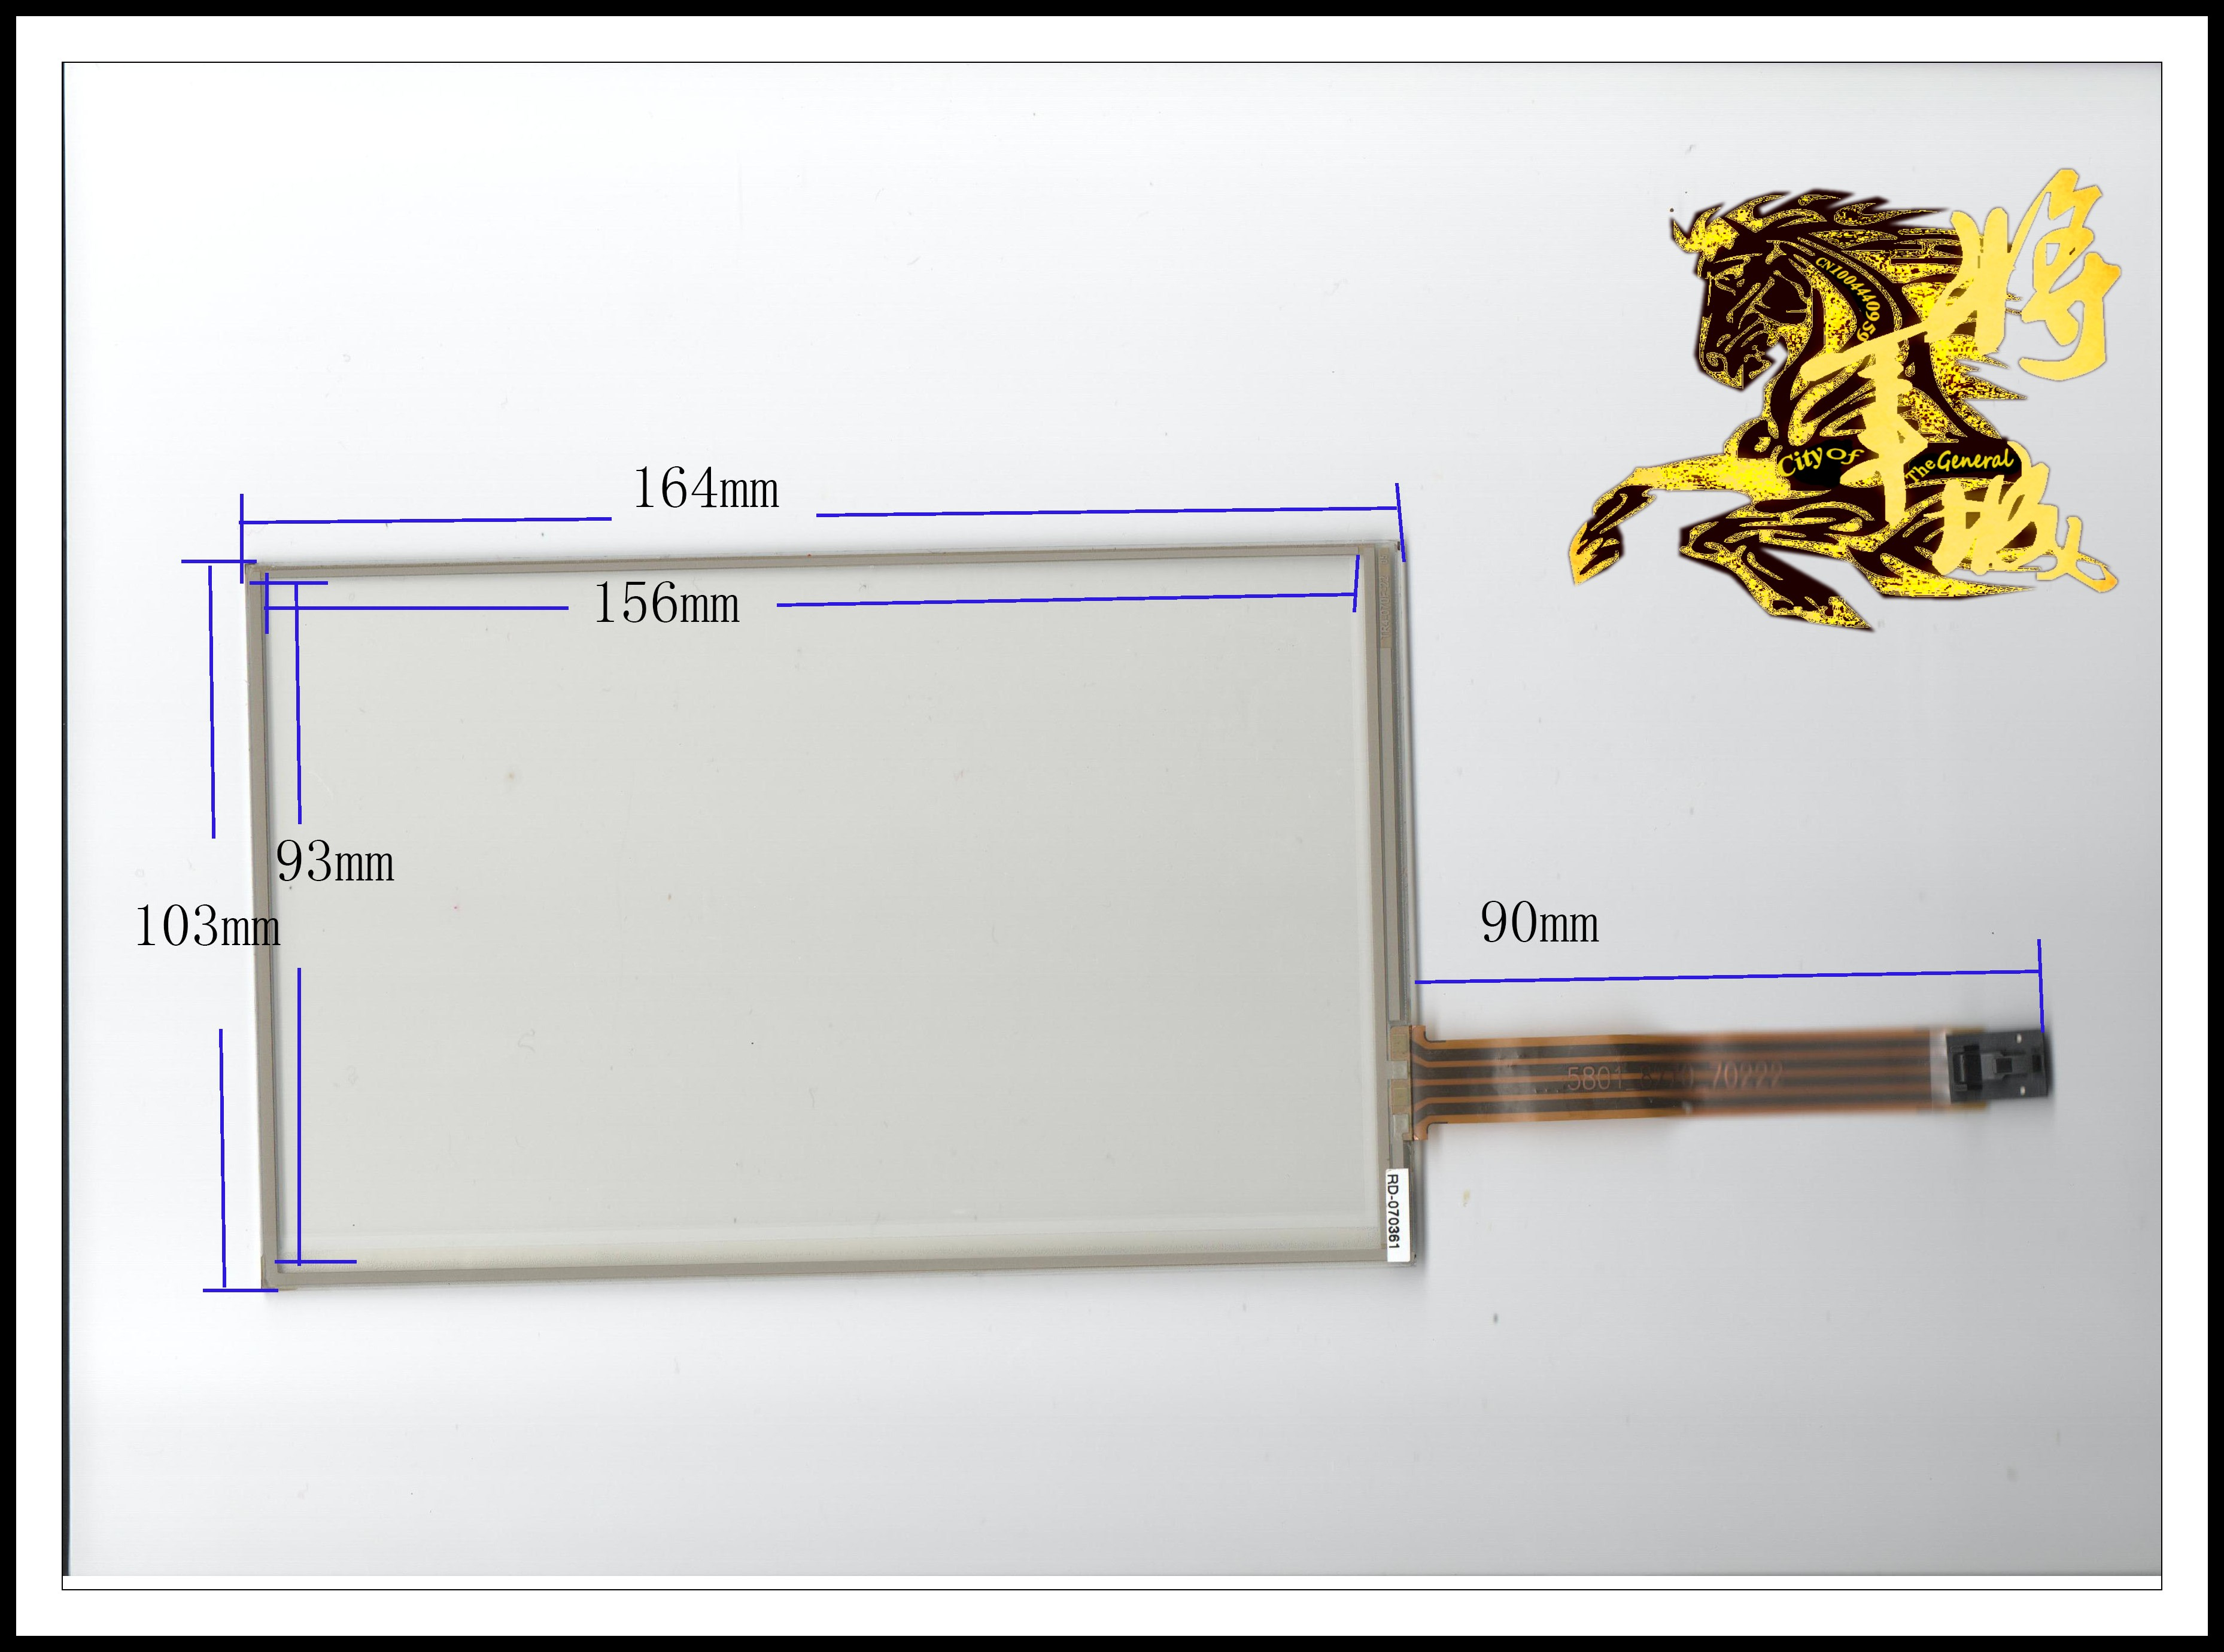 GENCTY For 7-inch four-wire resistive touch screen 164 * 103 W-X